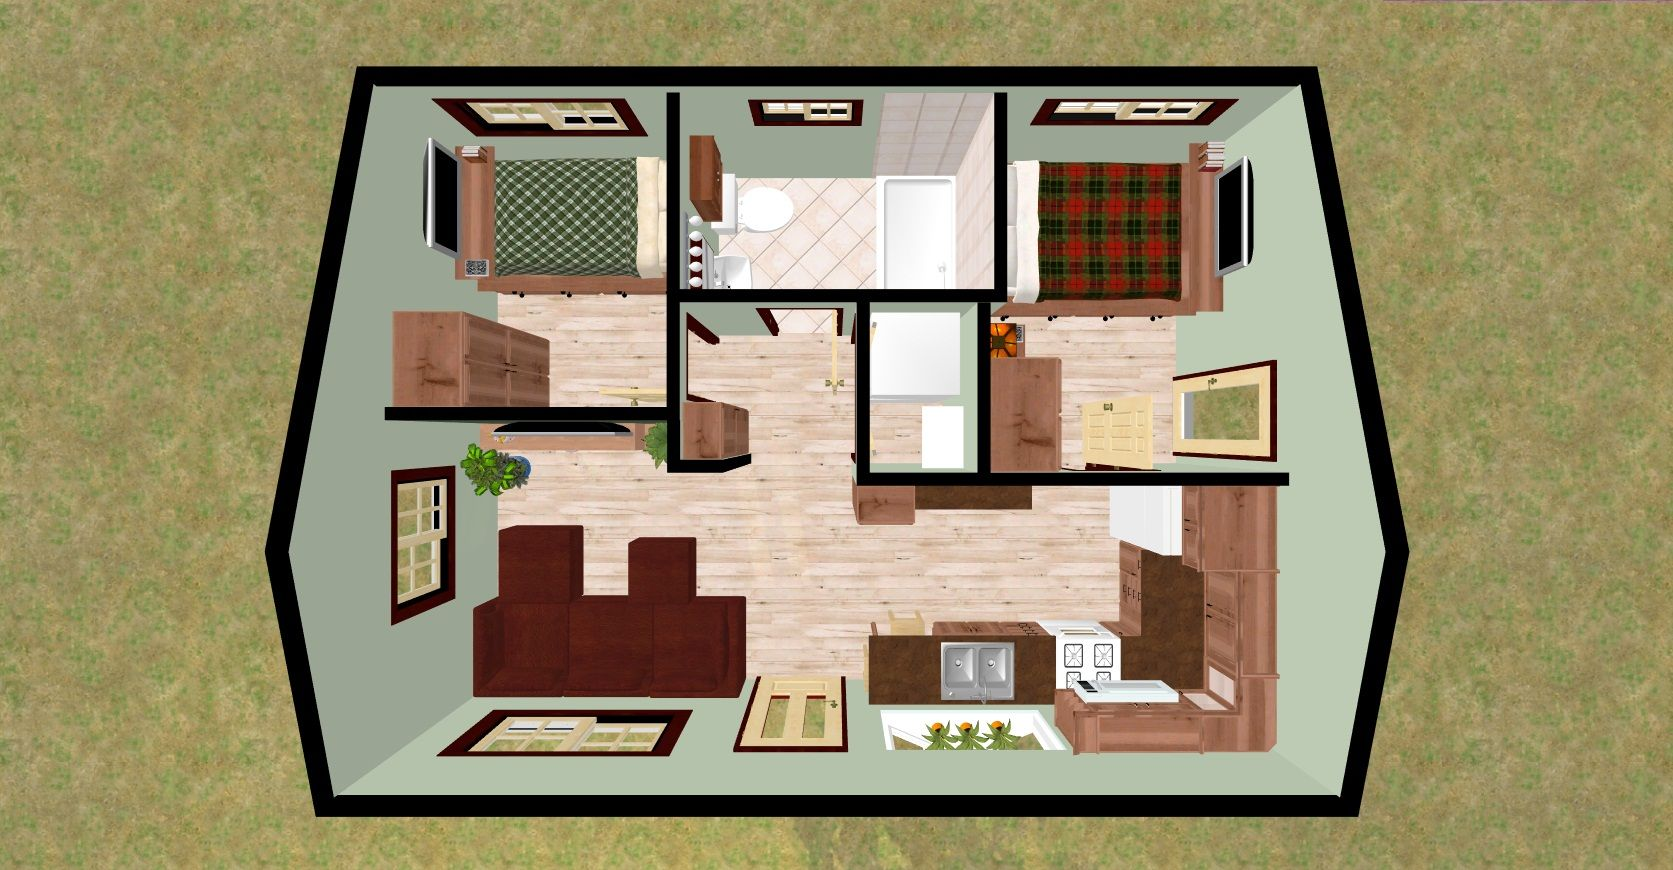 find this pin and more on house plans - Tiny House Plans 2